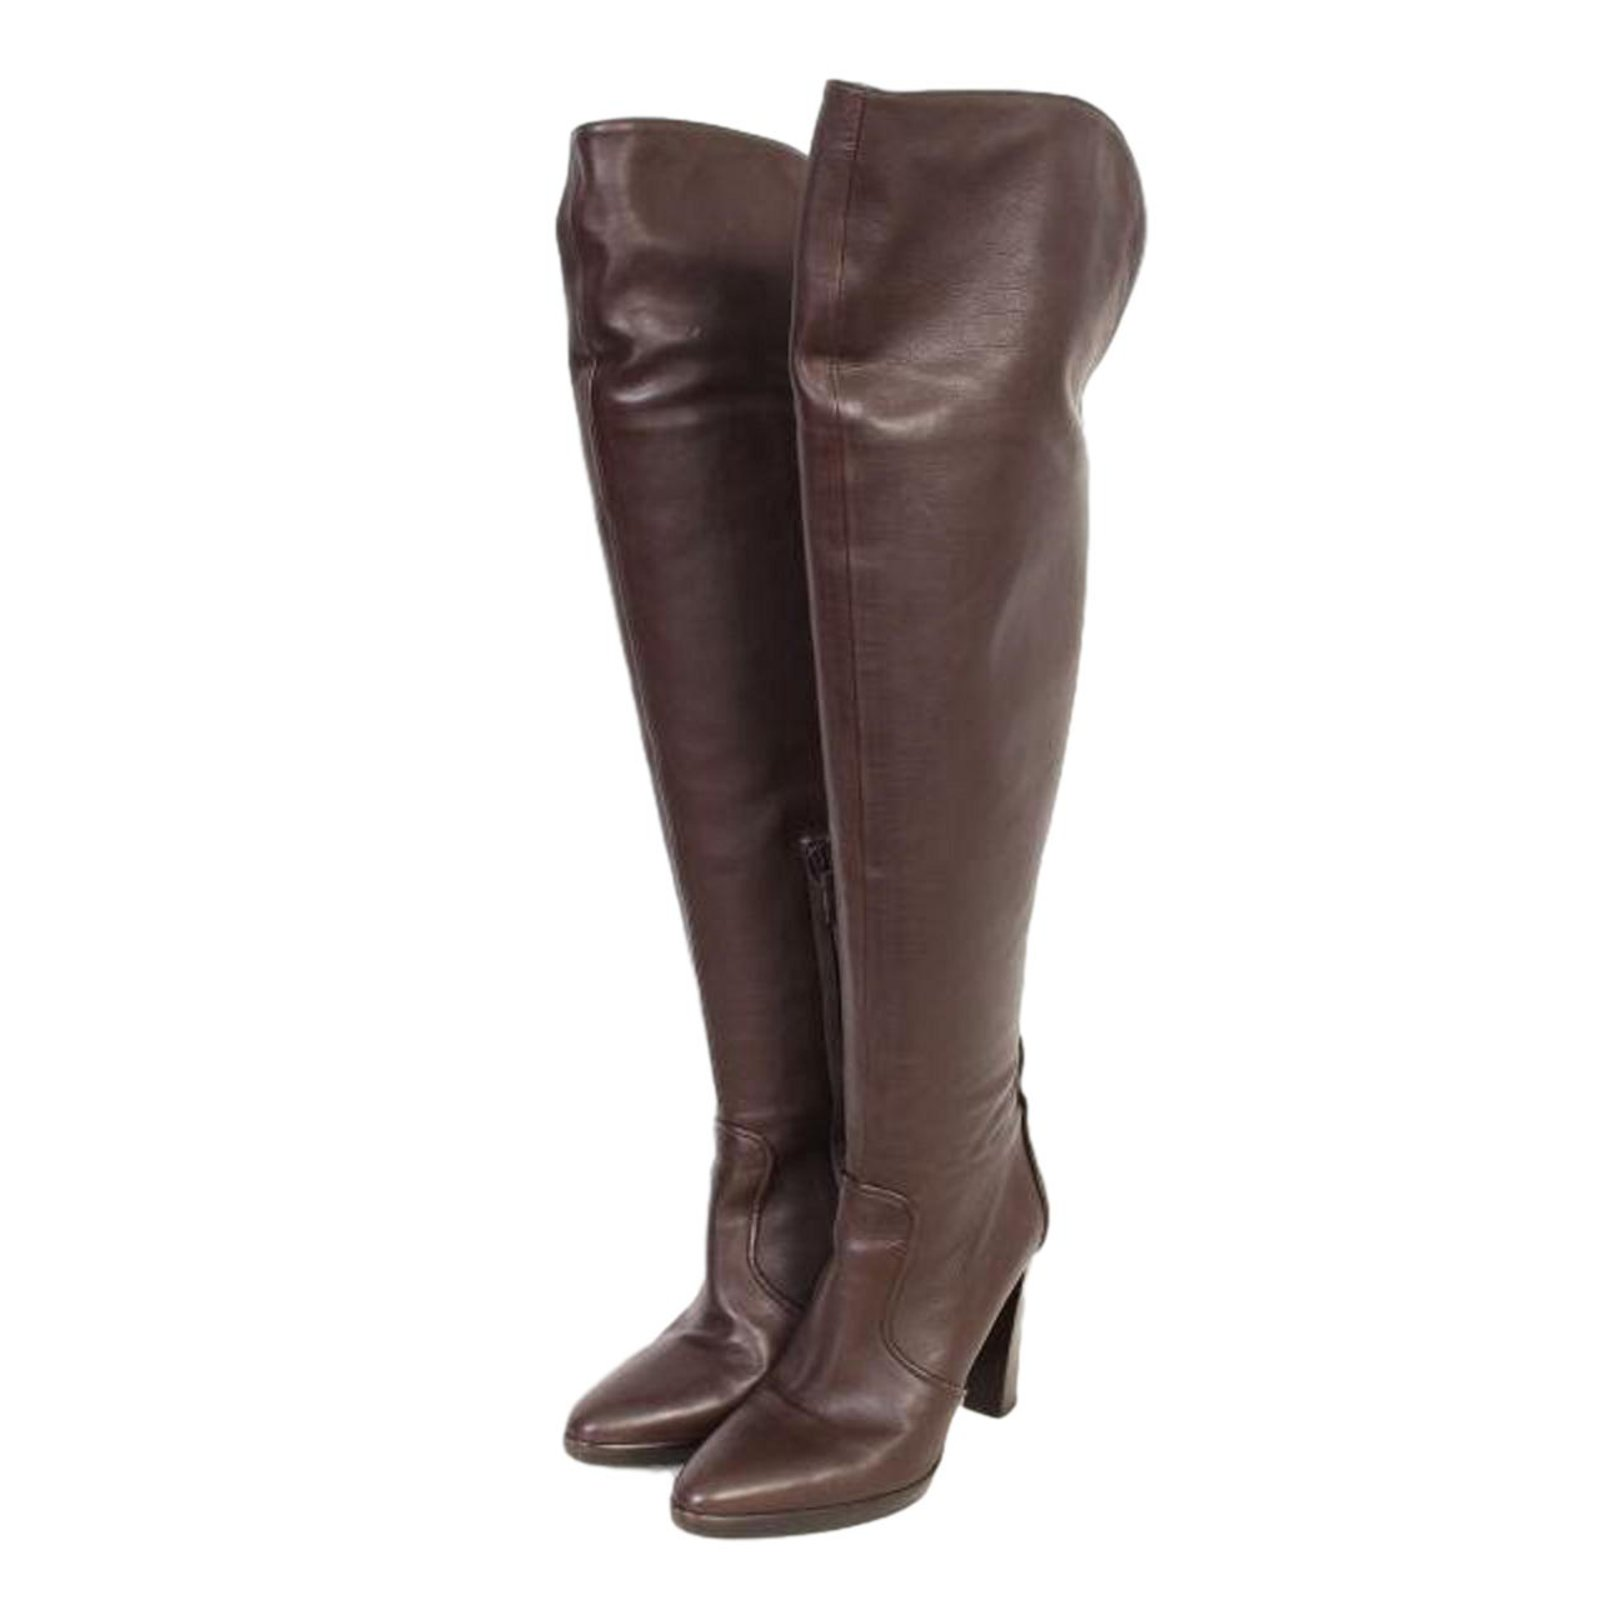 Hermès Knee-High Leather Boots clearance limited edition cheap best prices 6IYTUEl